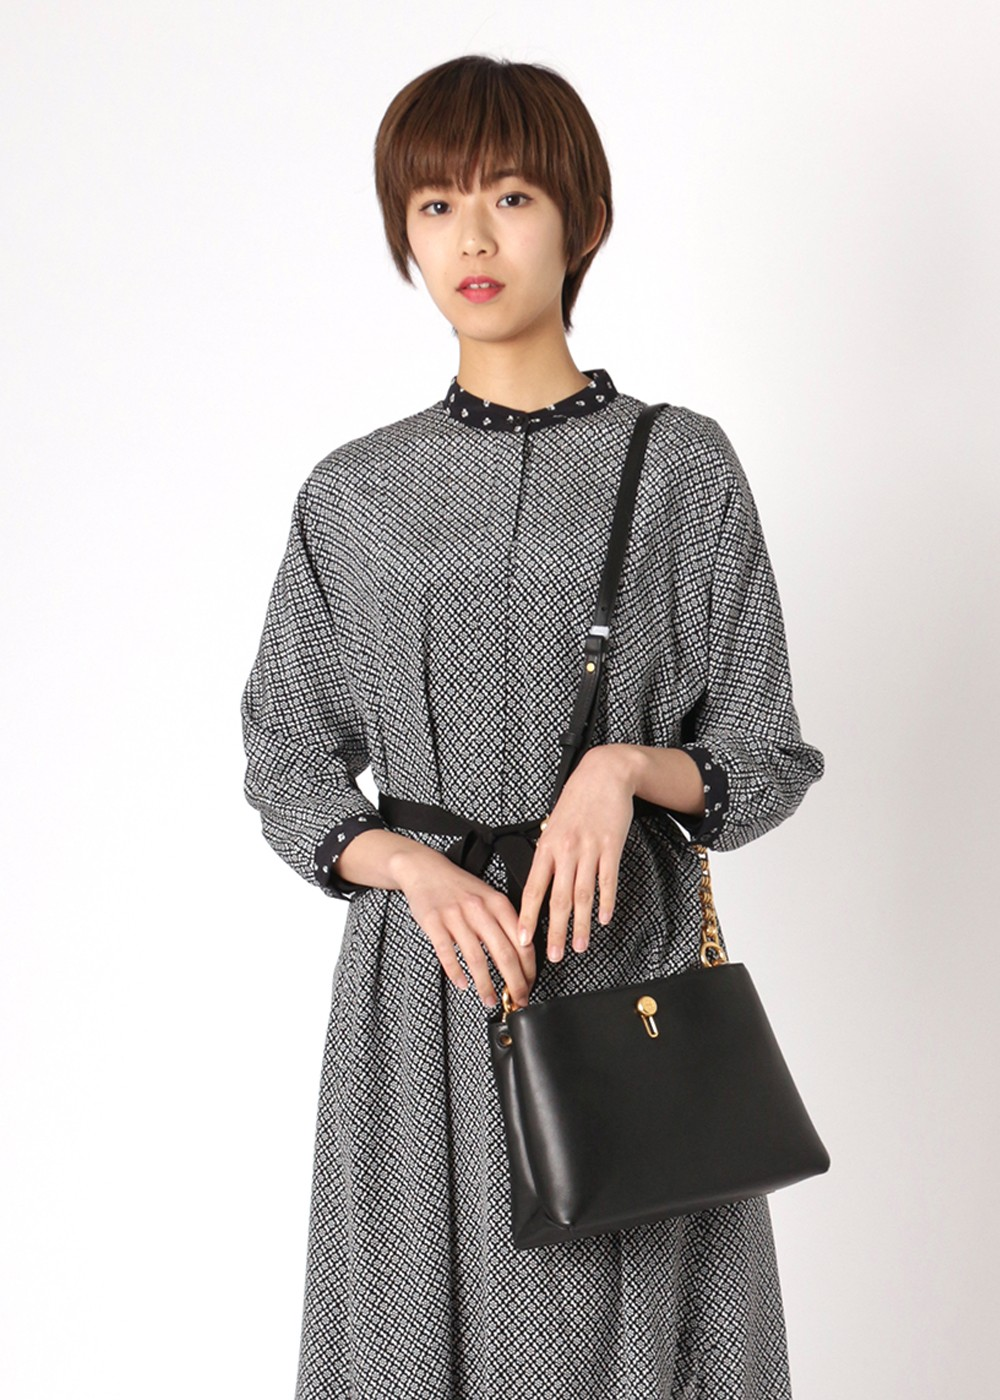 【最大48%OFF】LILY CHAIN CROSS-BODY|BLACK|ショルダーバッグ|Tory Burch